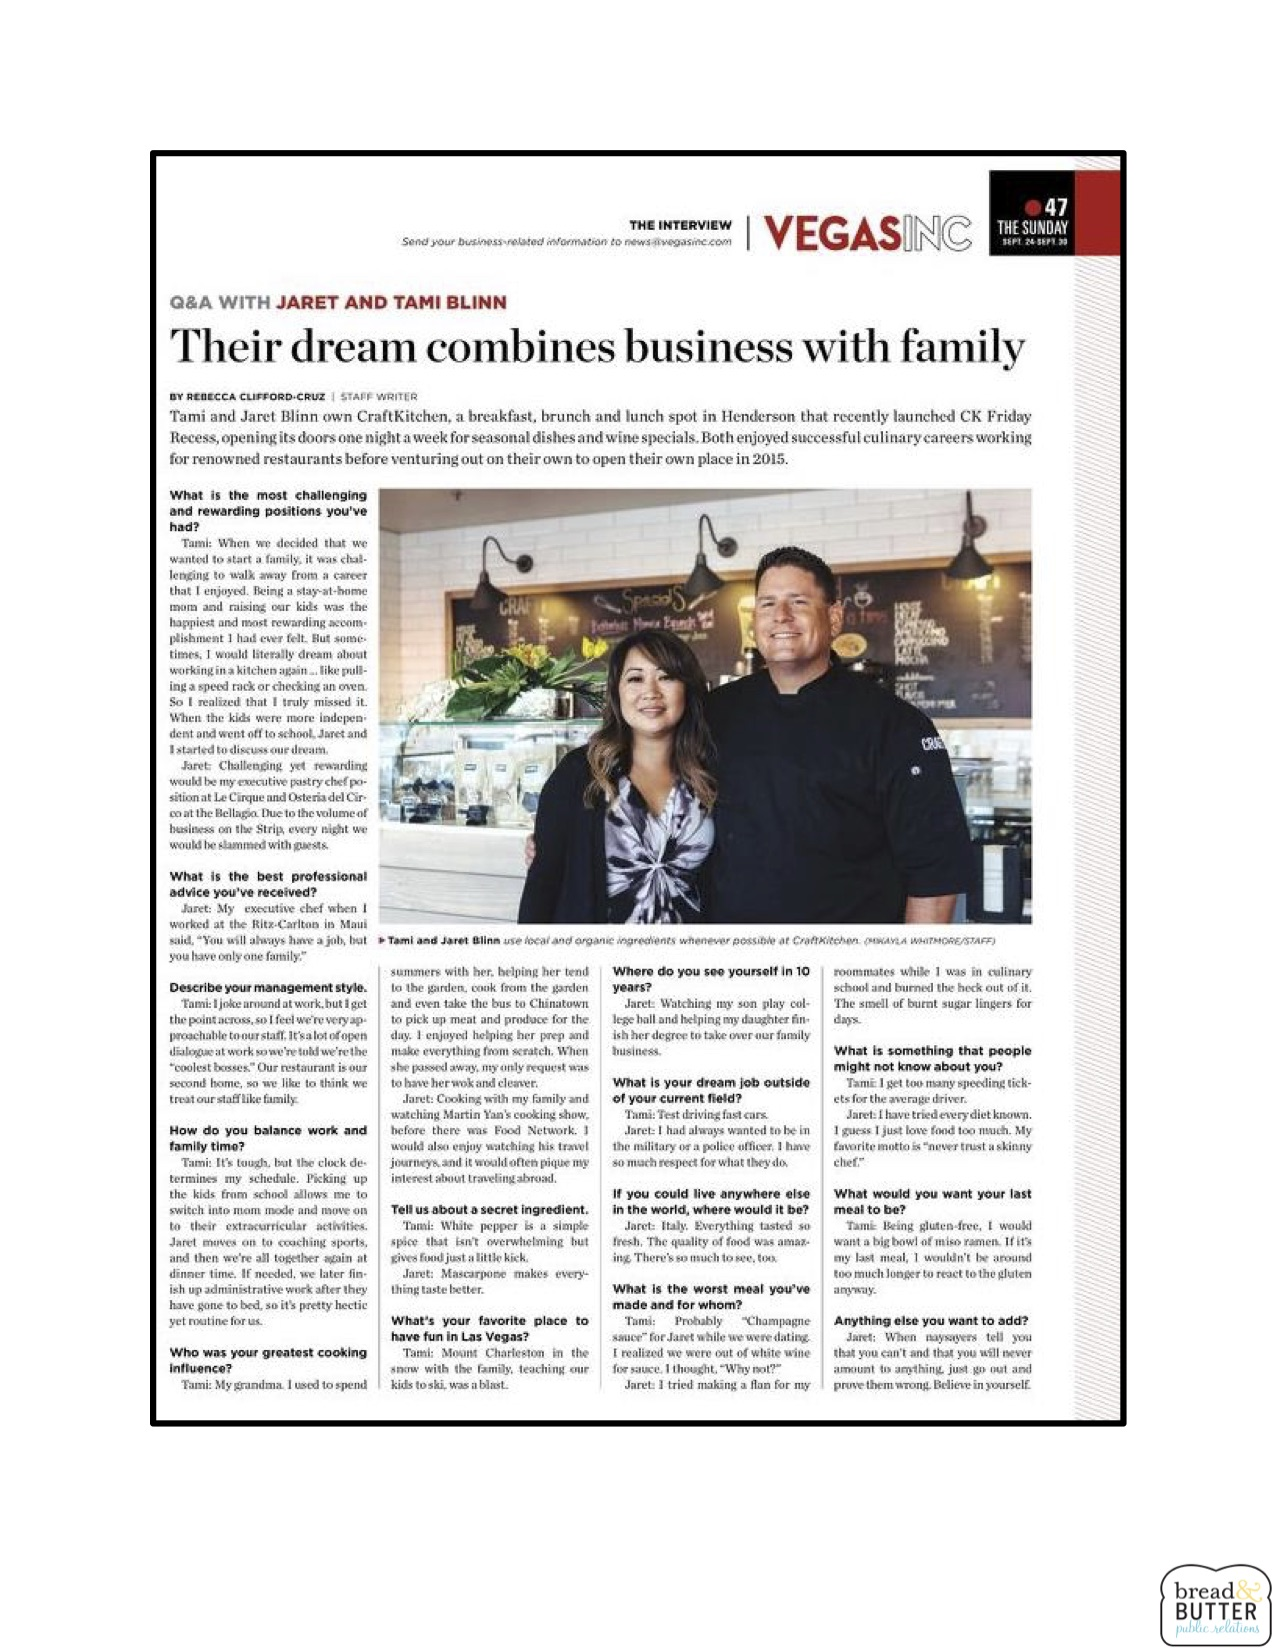 Their Dream Combines Business with Family